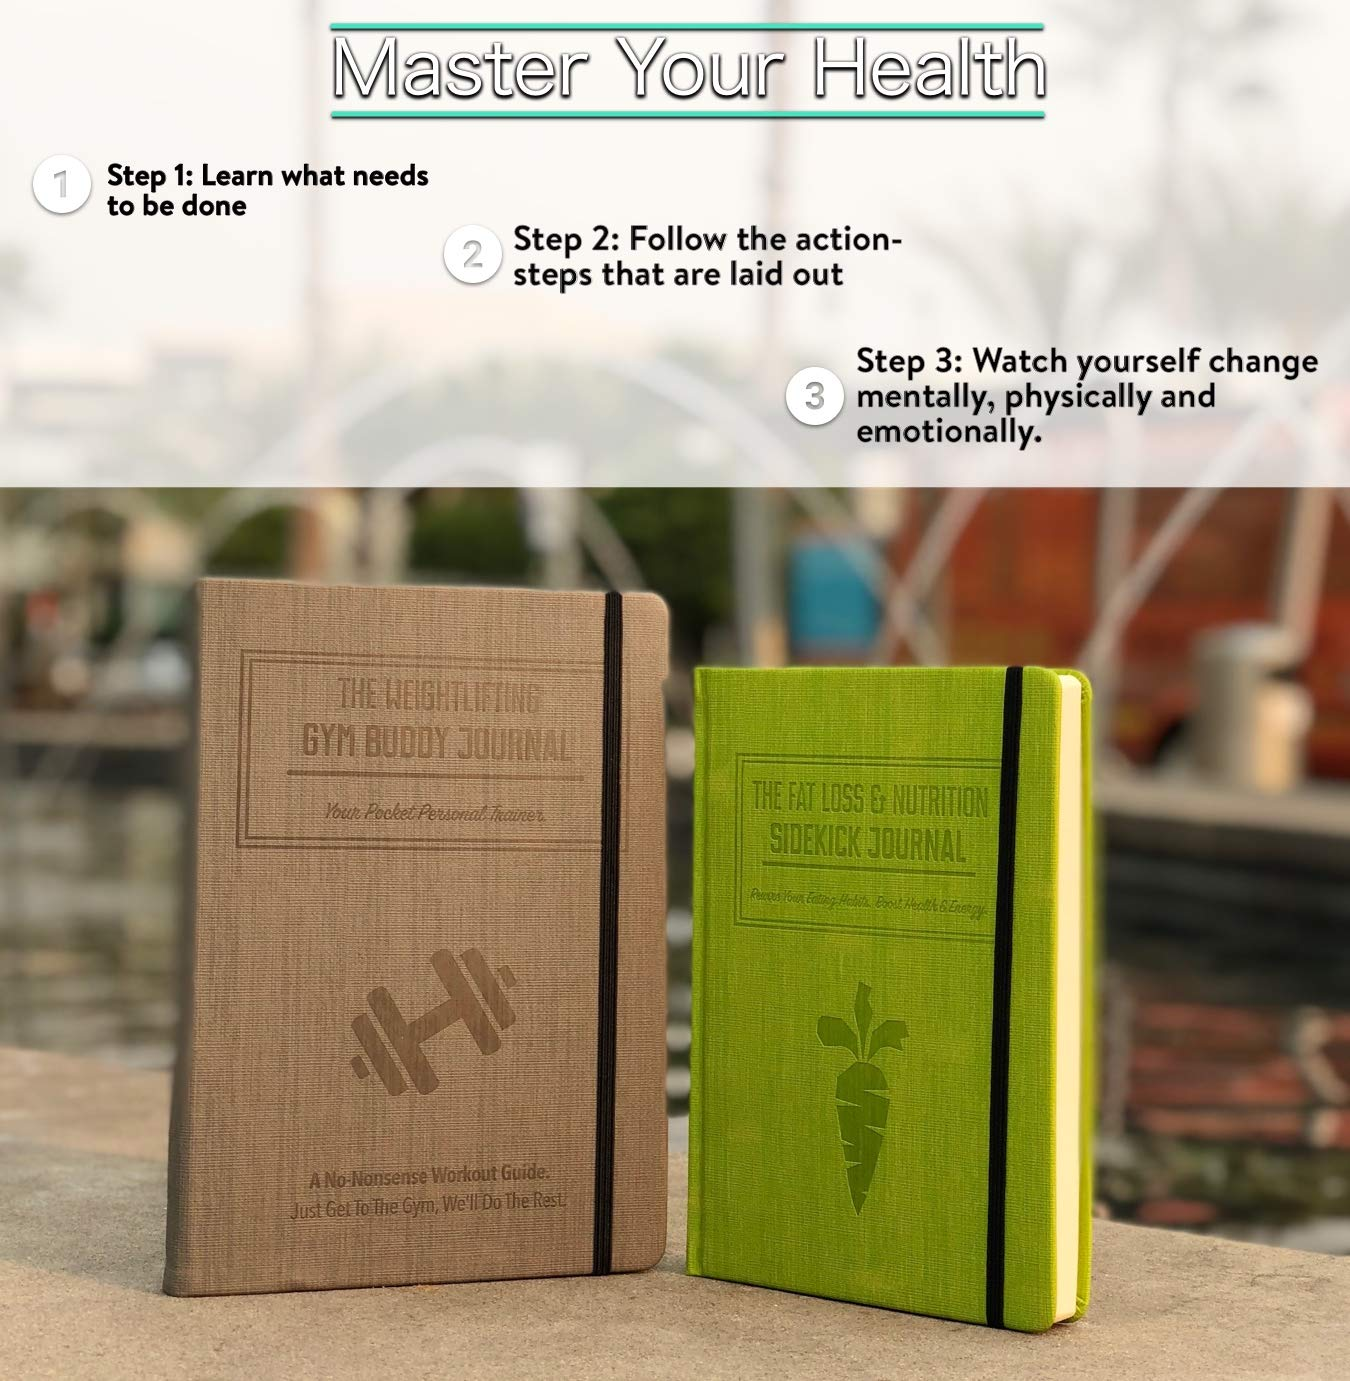 Habit Nest Bundle - 1 Gray Weightlifting Gym Buddy Journal,1x Red Morning Sidekick Journal, 1x Green Fat Loss & Nutrition Sidekick Journal, and 1x Blue Meditation Sidekick Journal by Habit Nest (Image #2)